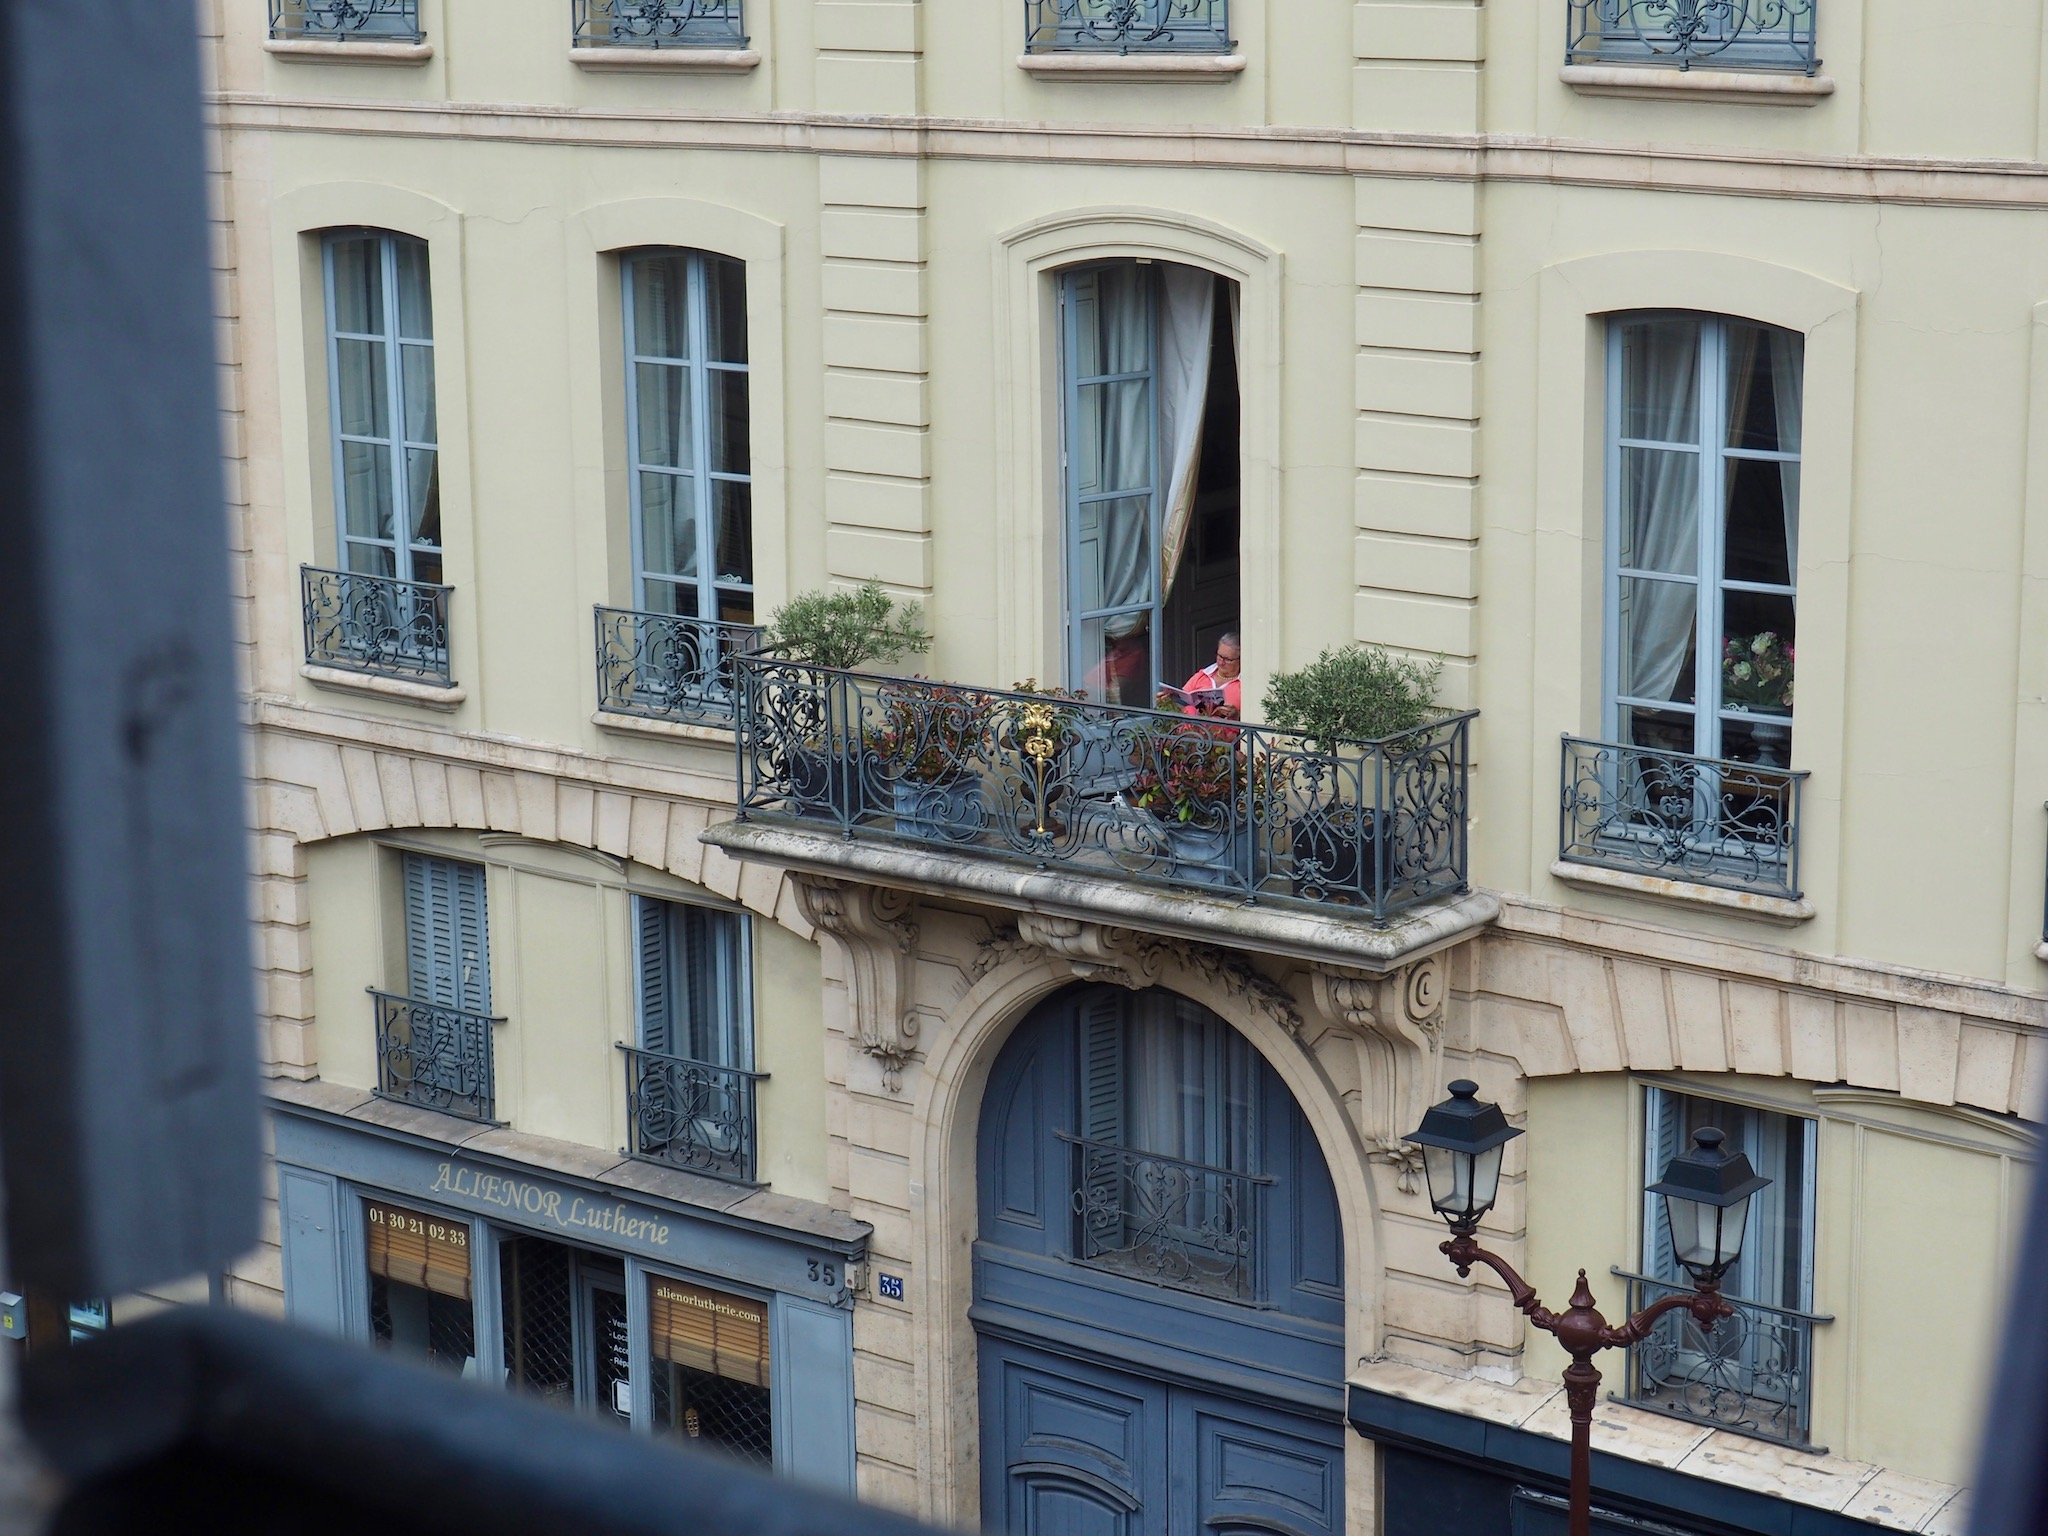 A woman in a pink shirts reads on her balcony in Paris, with her large door open and plants next to her on the balcony.